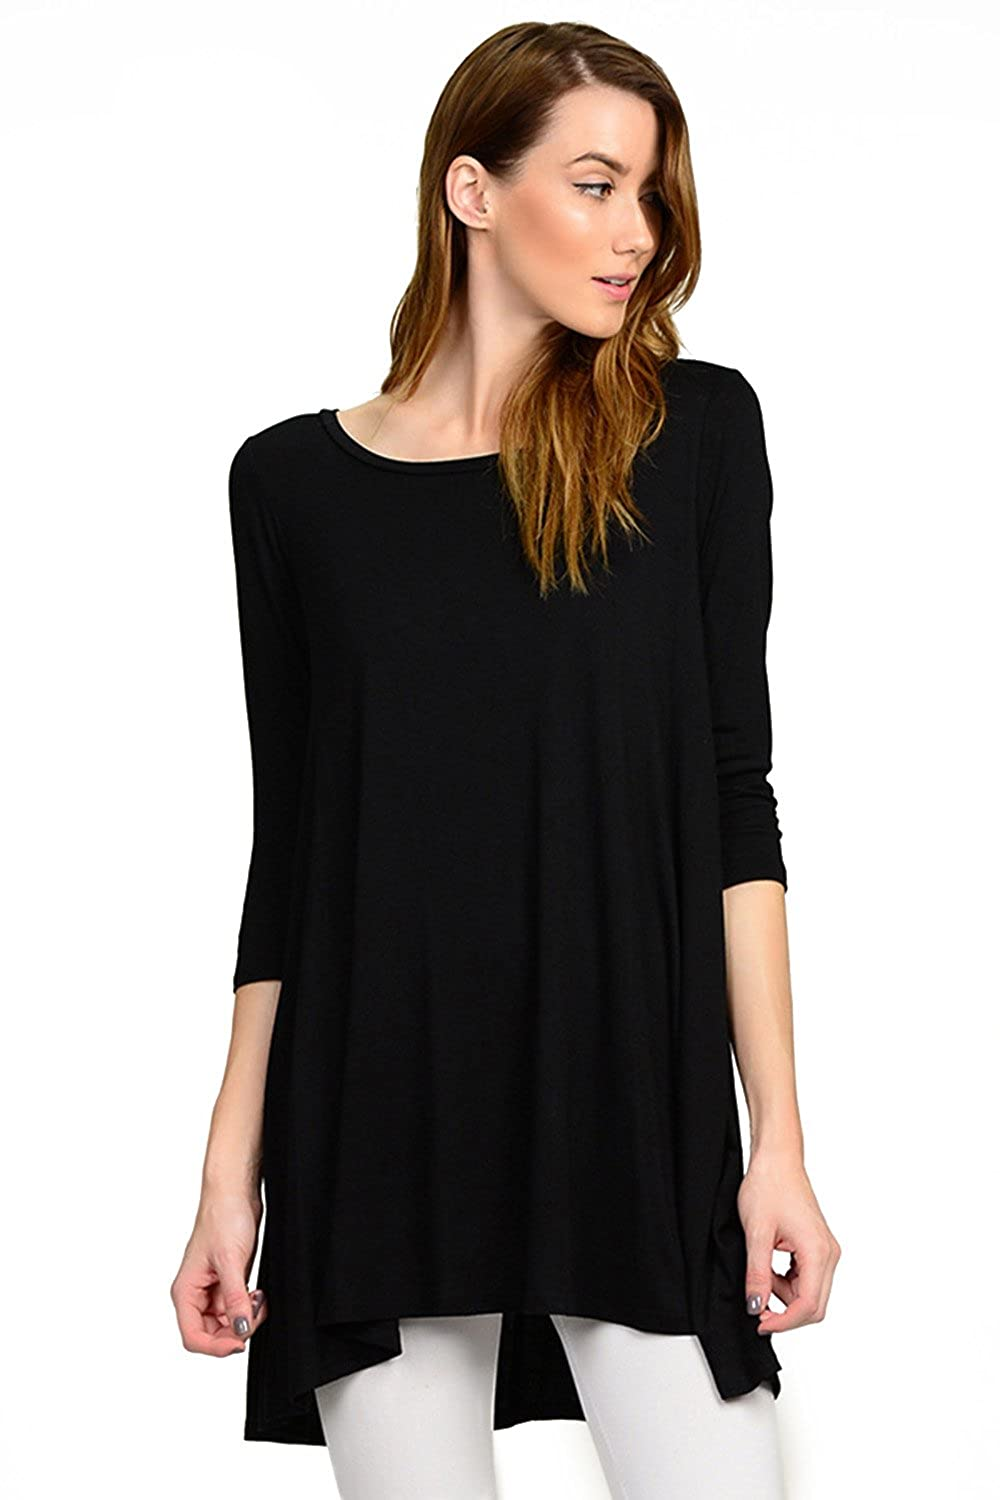 3/4 SLEEVES RAYON JERSEY A-LINE TUNIC TOP